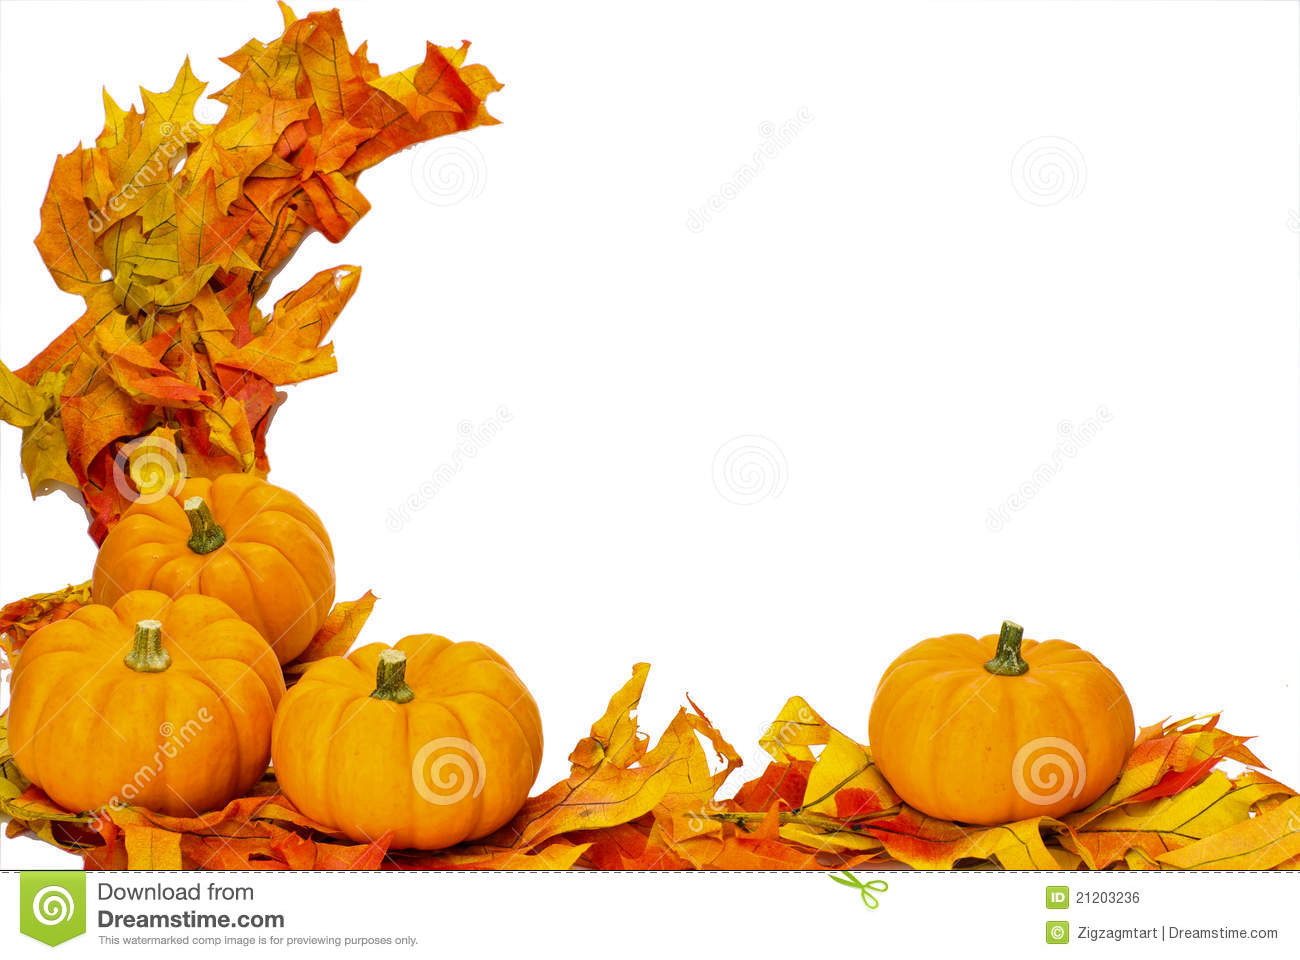 Free Fall Wallpaper Downloads Fall Thanksgiving Halloween Decoration Isolated Stock